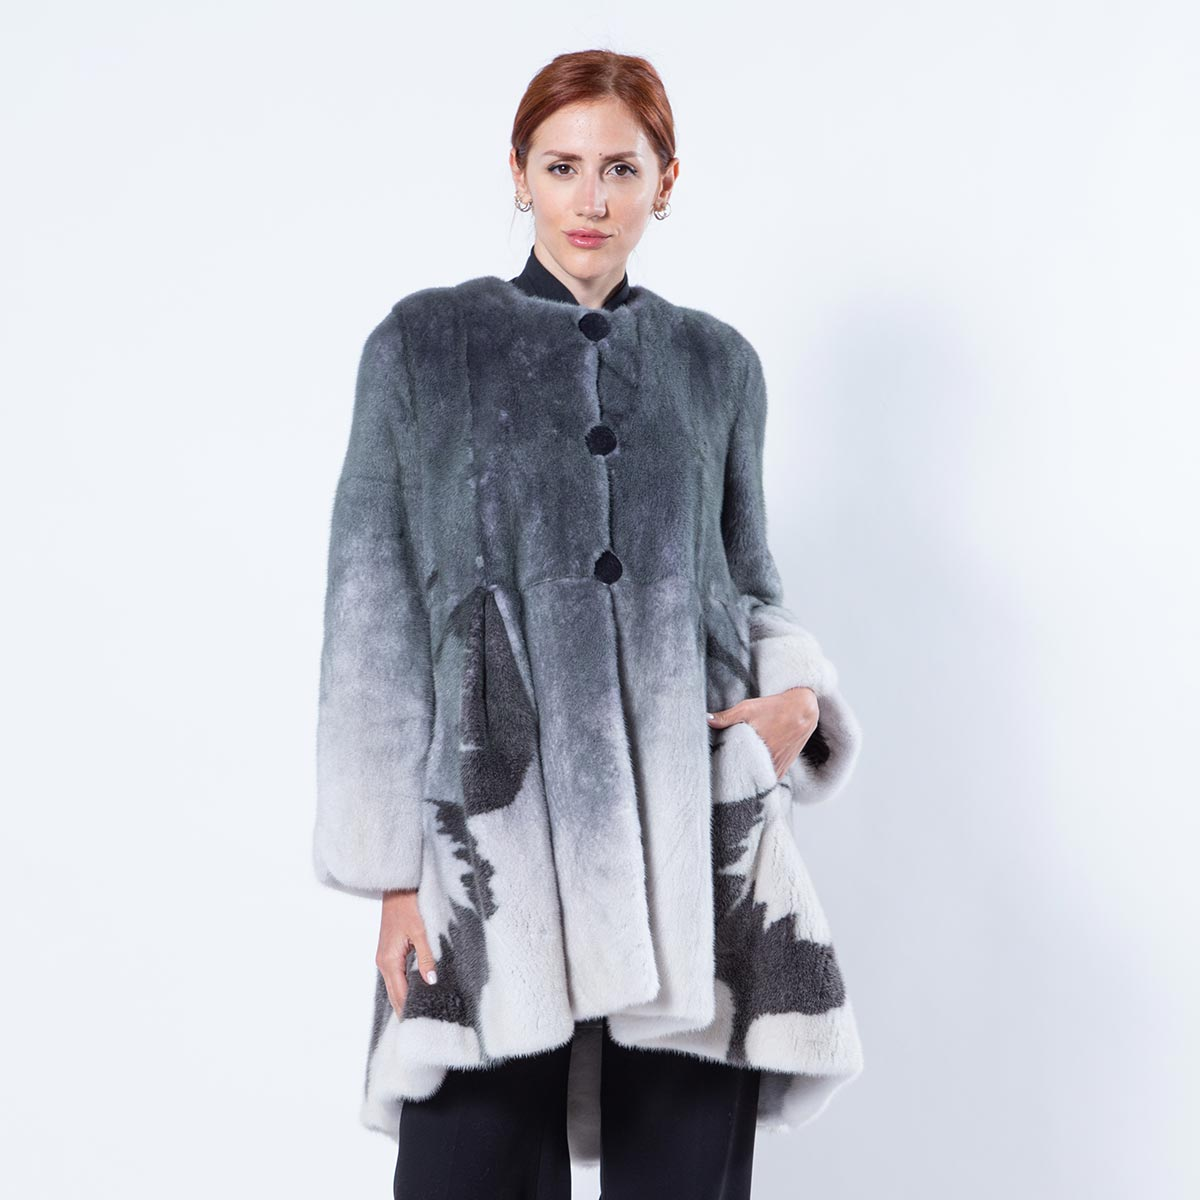 Black Degrade Mink Jacket with Butterfly print | Sarigianni Furs